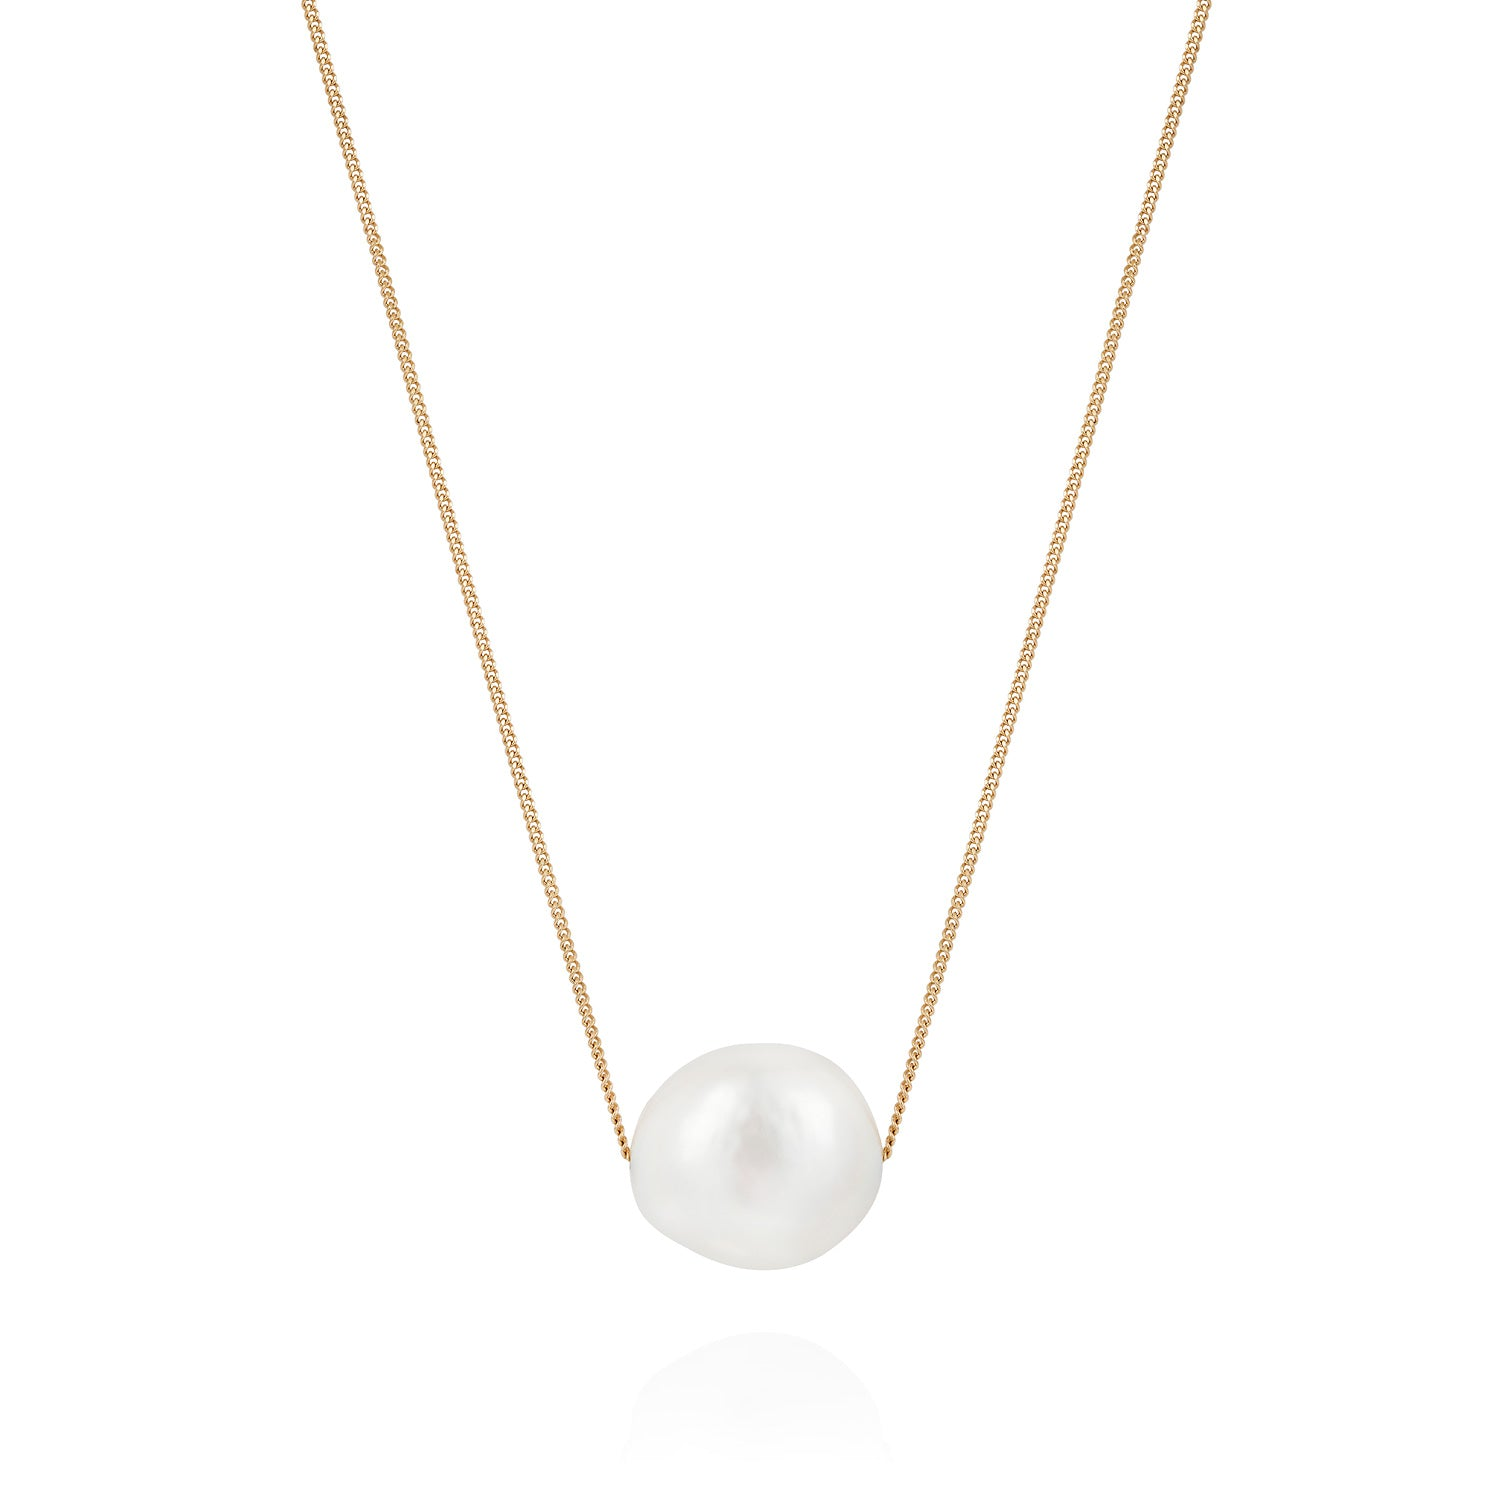 Mermaid: Small Floating Pearl Necklace